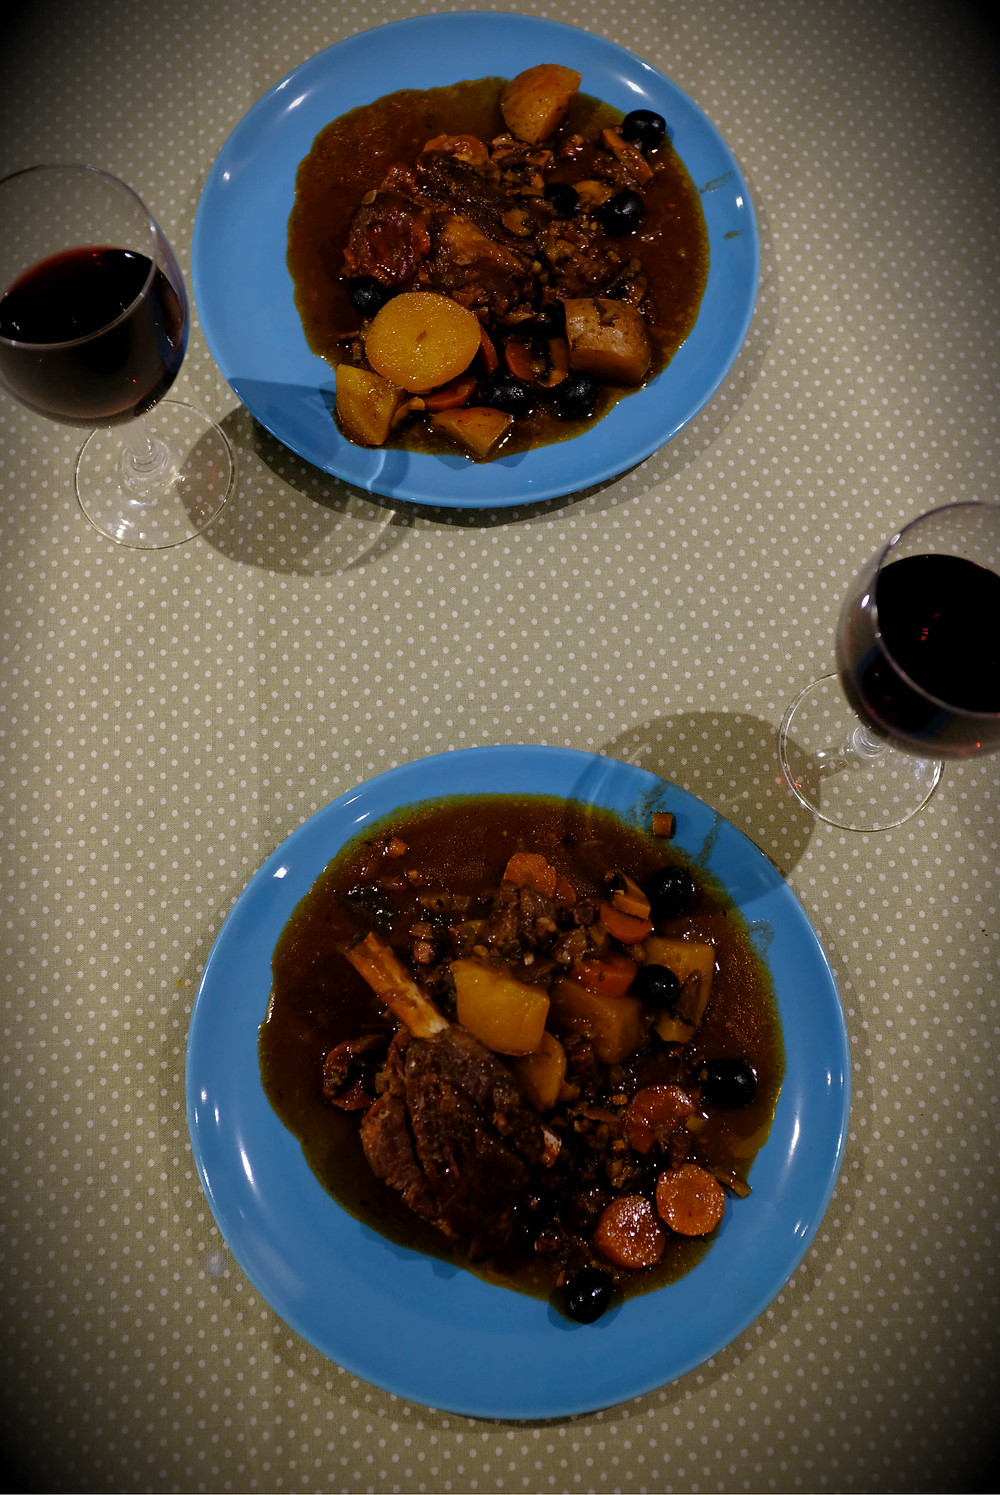 Picture of beef stew dished up with wine